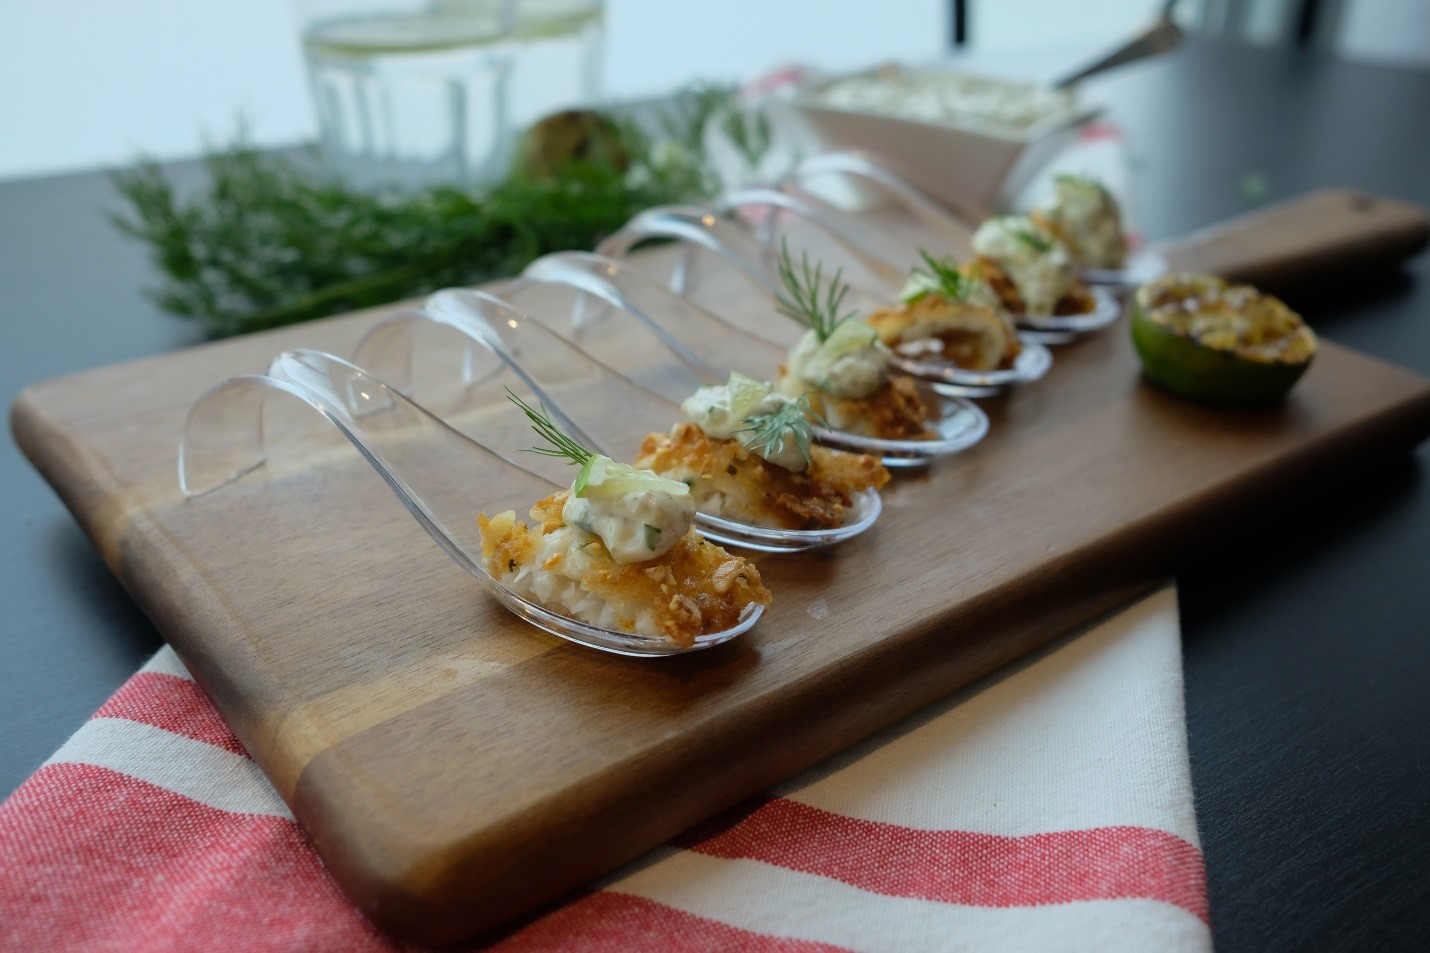 Easy Japanese Inspired Seafood App - Almond Crusted Sole Bites with Wasabi Tartar